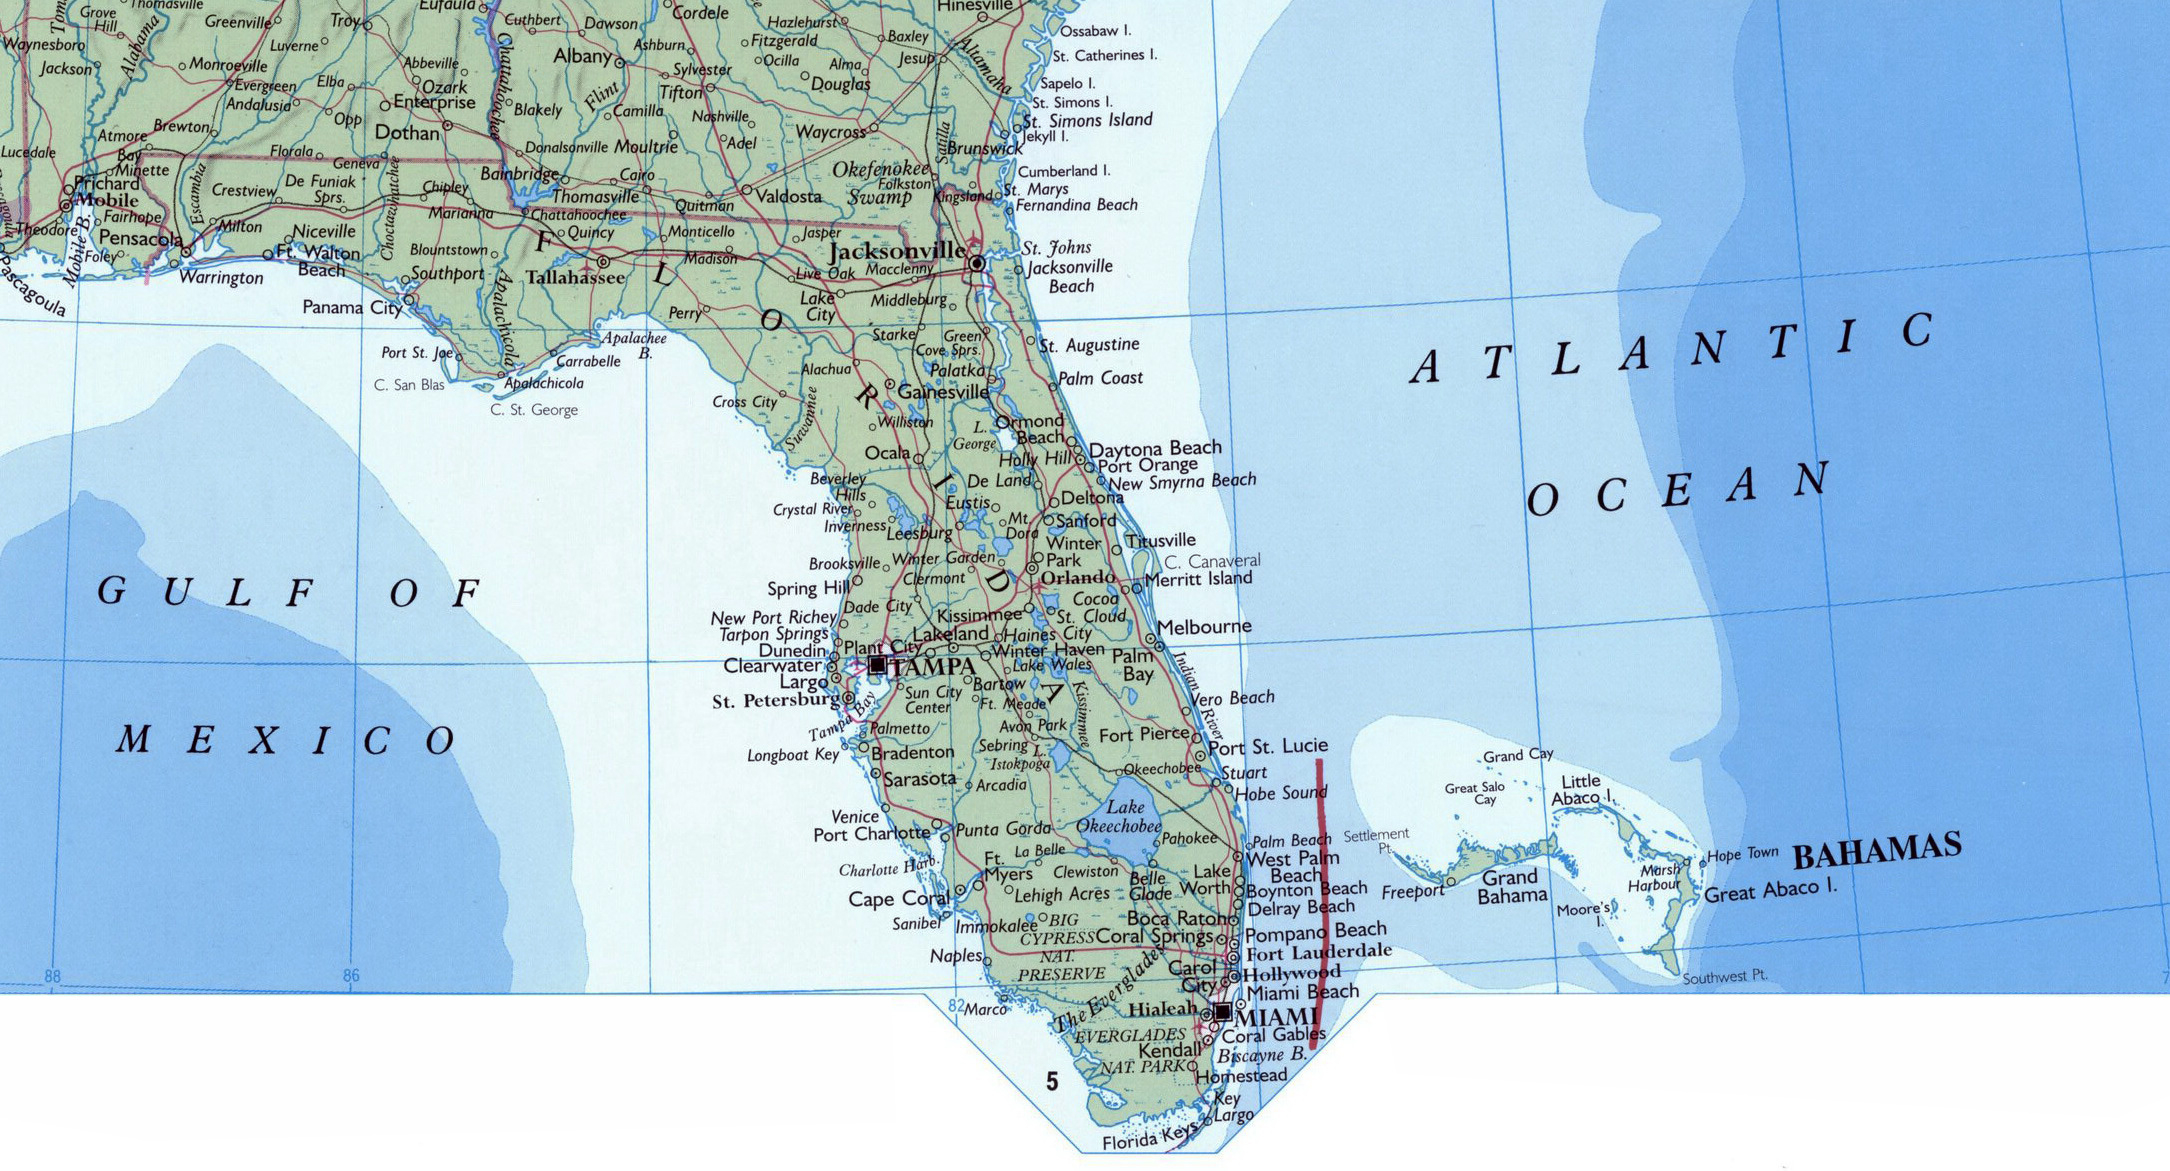 Large Map Of Florida State With Roads, Highways And Cities | Florida - Large Map Of Florida